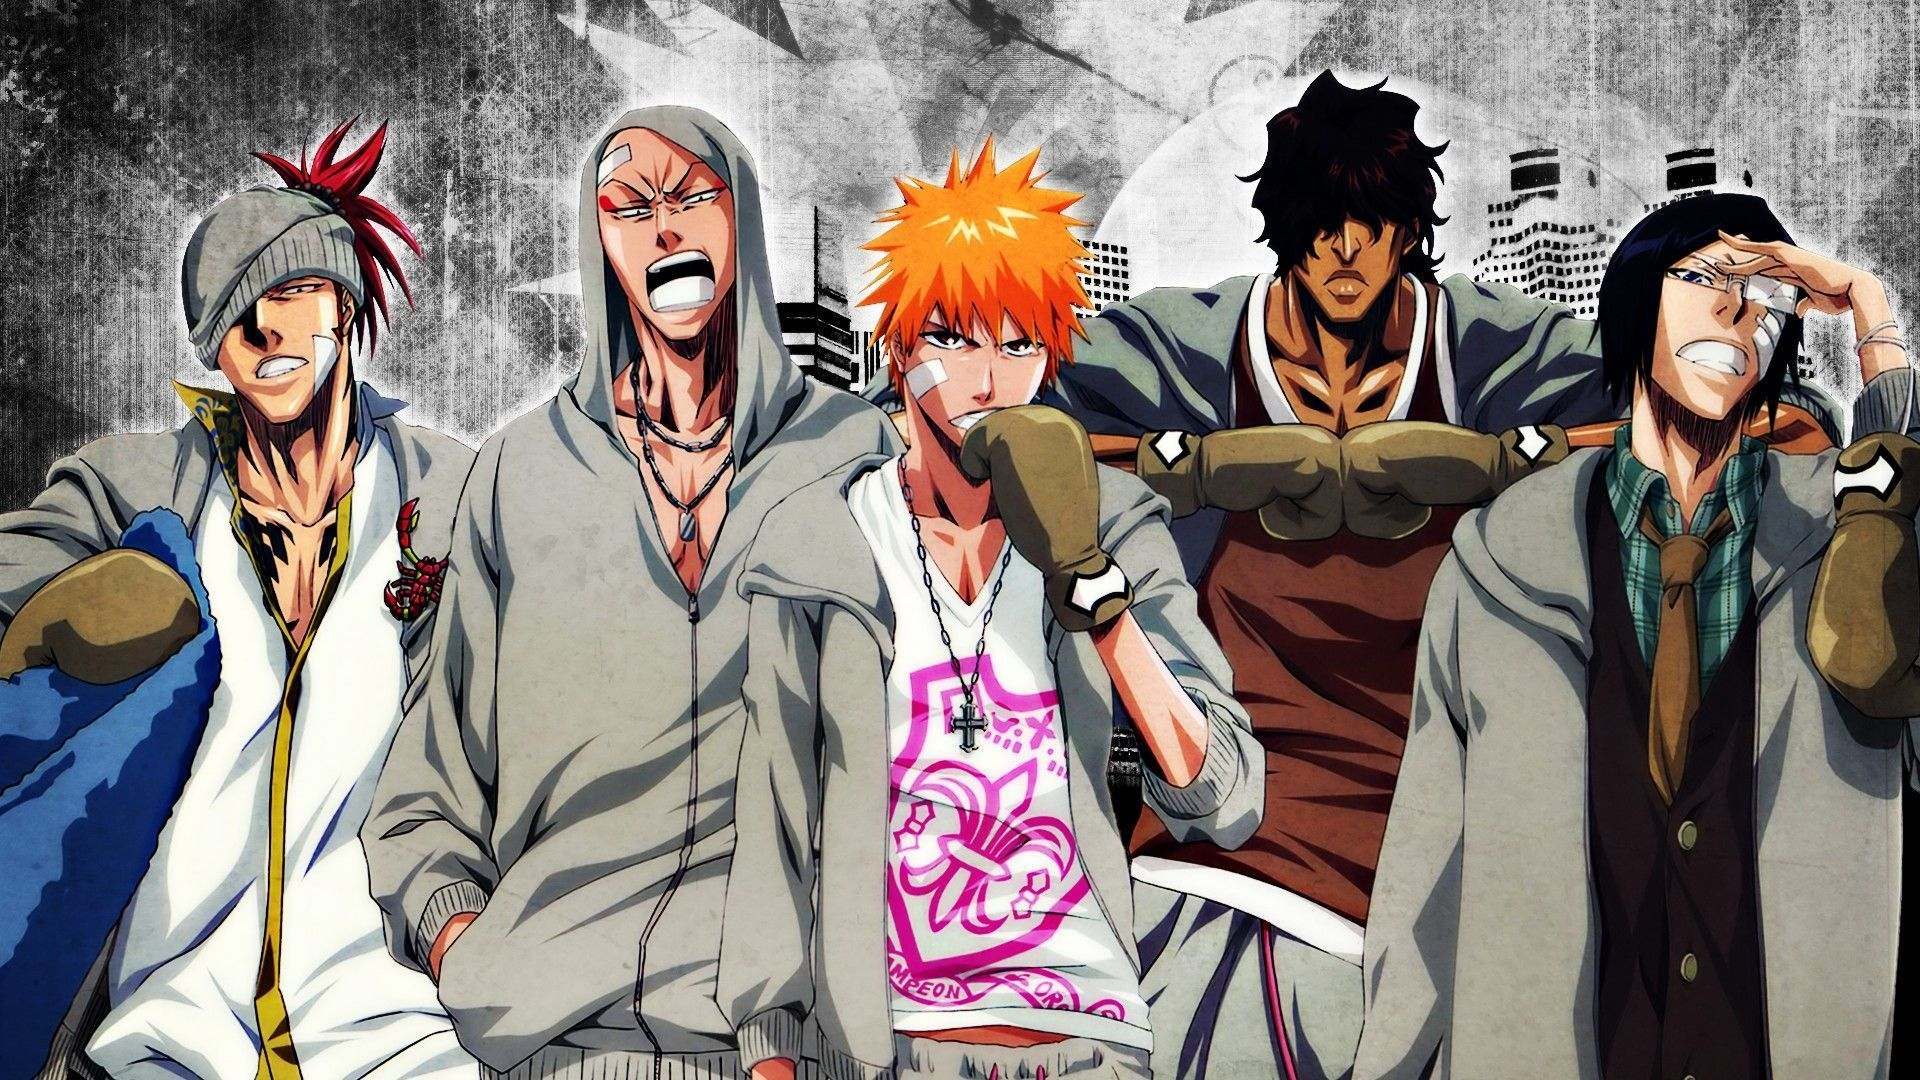 Bleach Captains Wallpapers - Top Free Bleach Captains